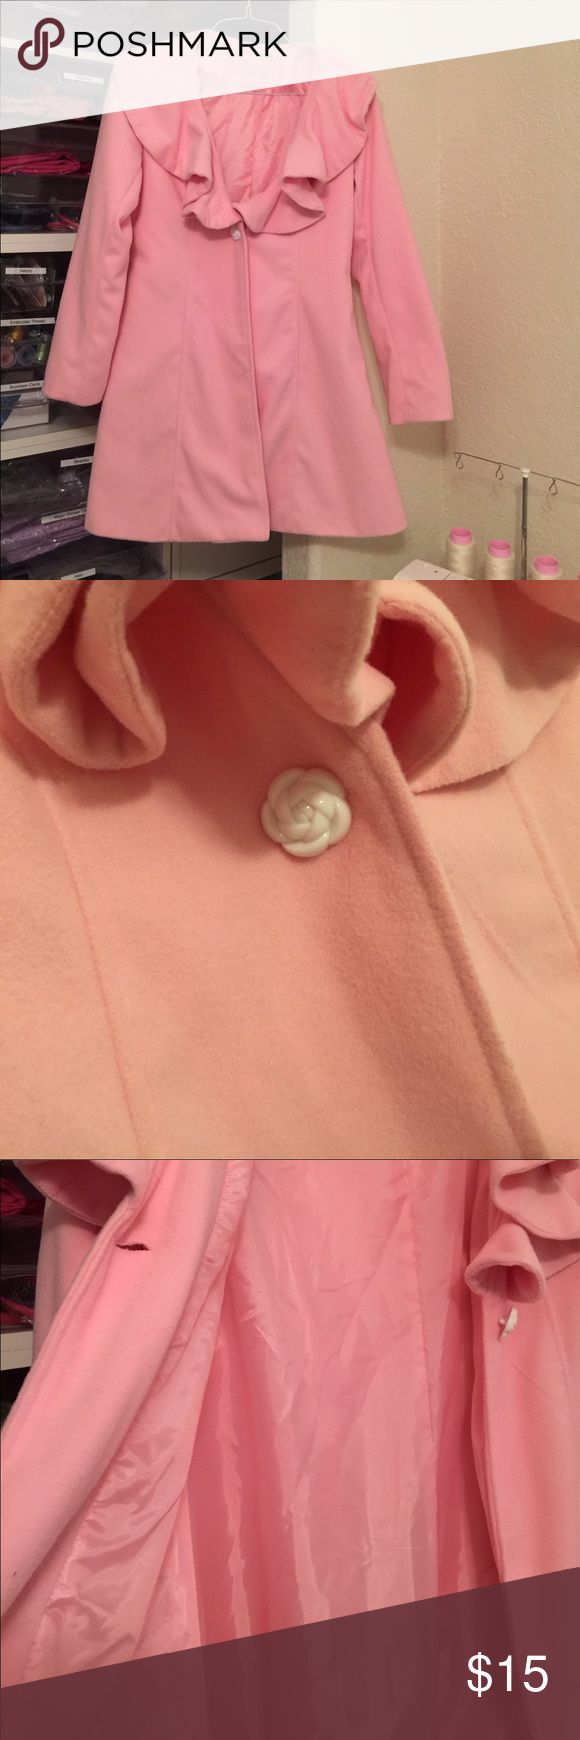 """Pink Felt Satin lining Coat. Very cute pink one rose button coat. 32"""" length, sleeve length is 24 1/2"""", waist is 35"""".   Wide ruffle collar.  This coat would be perfect with black leggings and knee high boots. Will easily fit a size 5 to 8. Perfect for Fall temperatures. Jackets & Coats"""